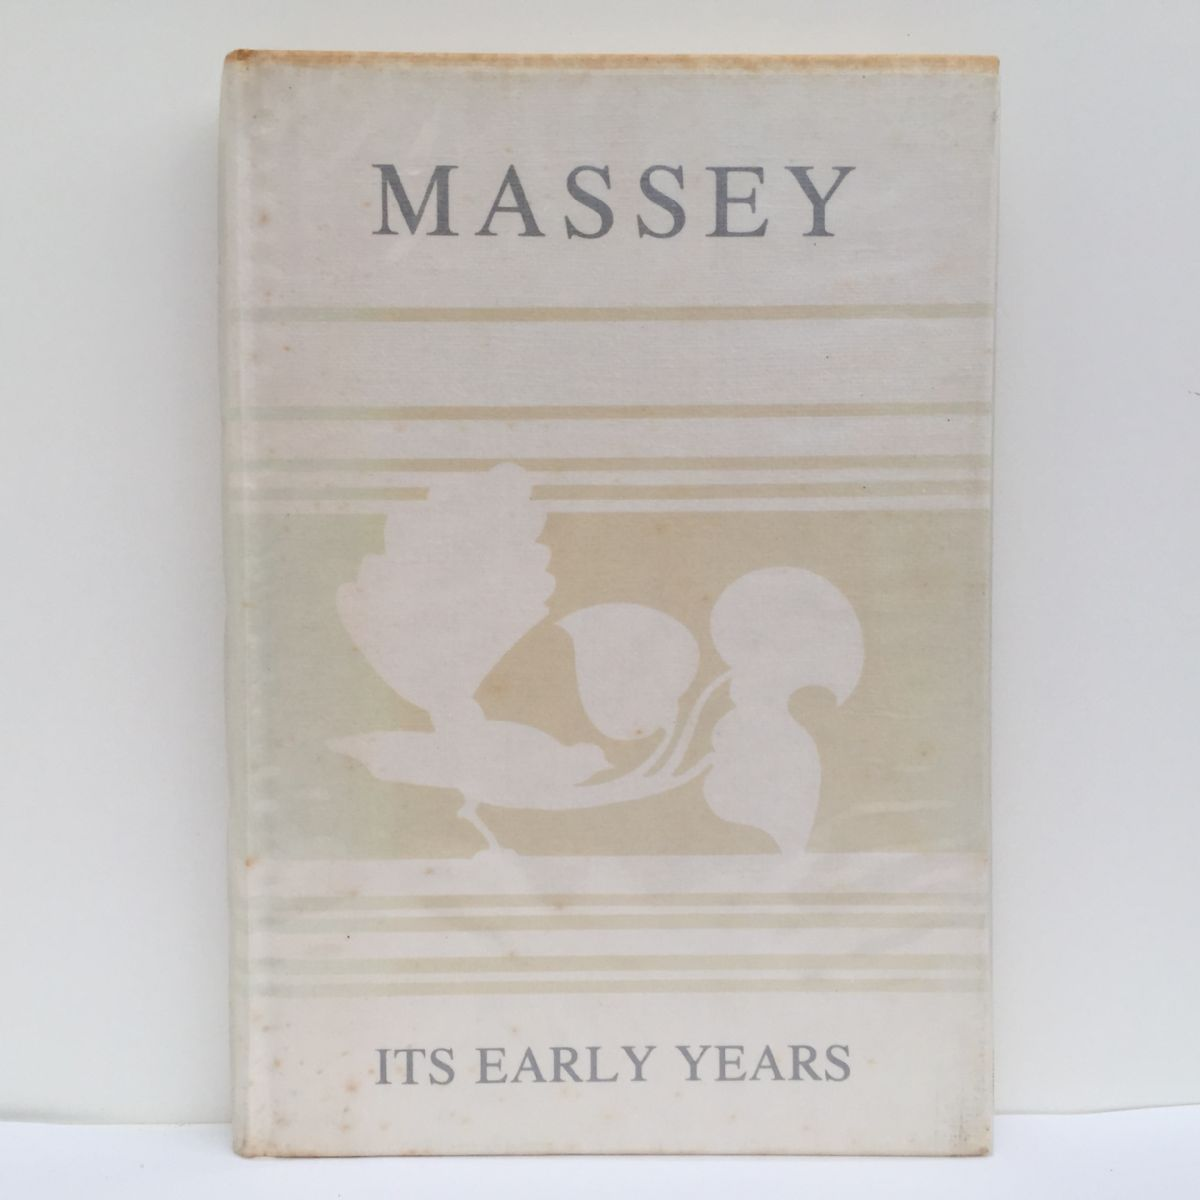 Massey its Early Years